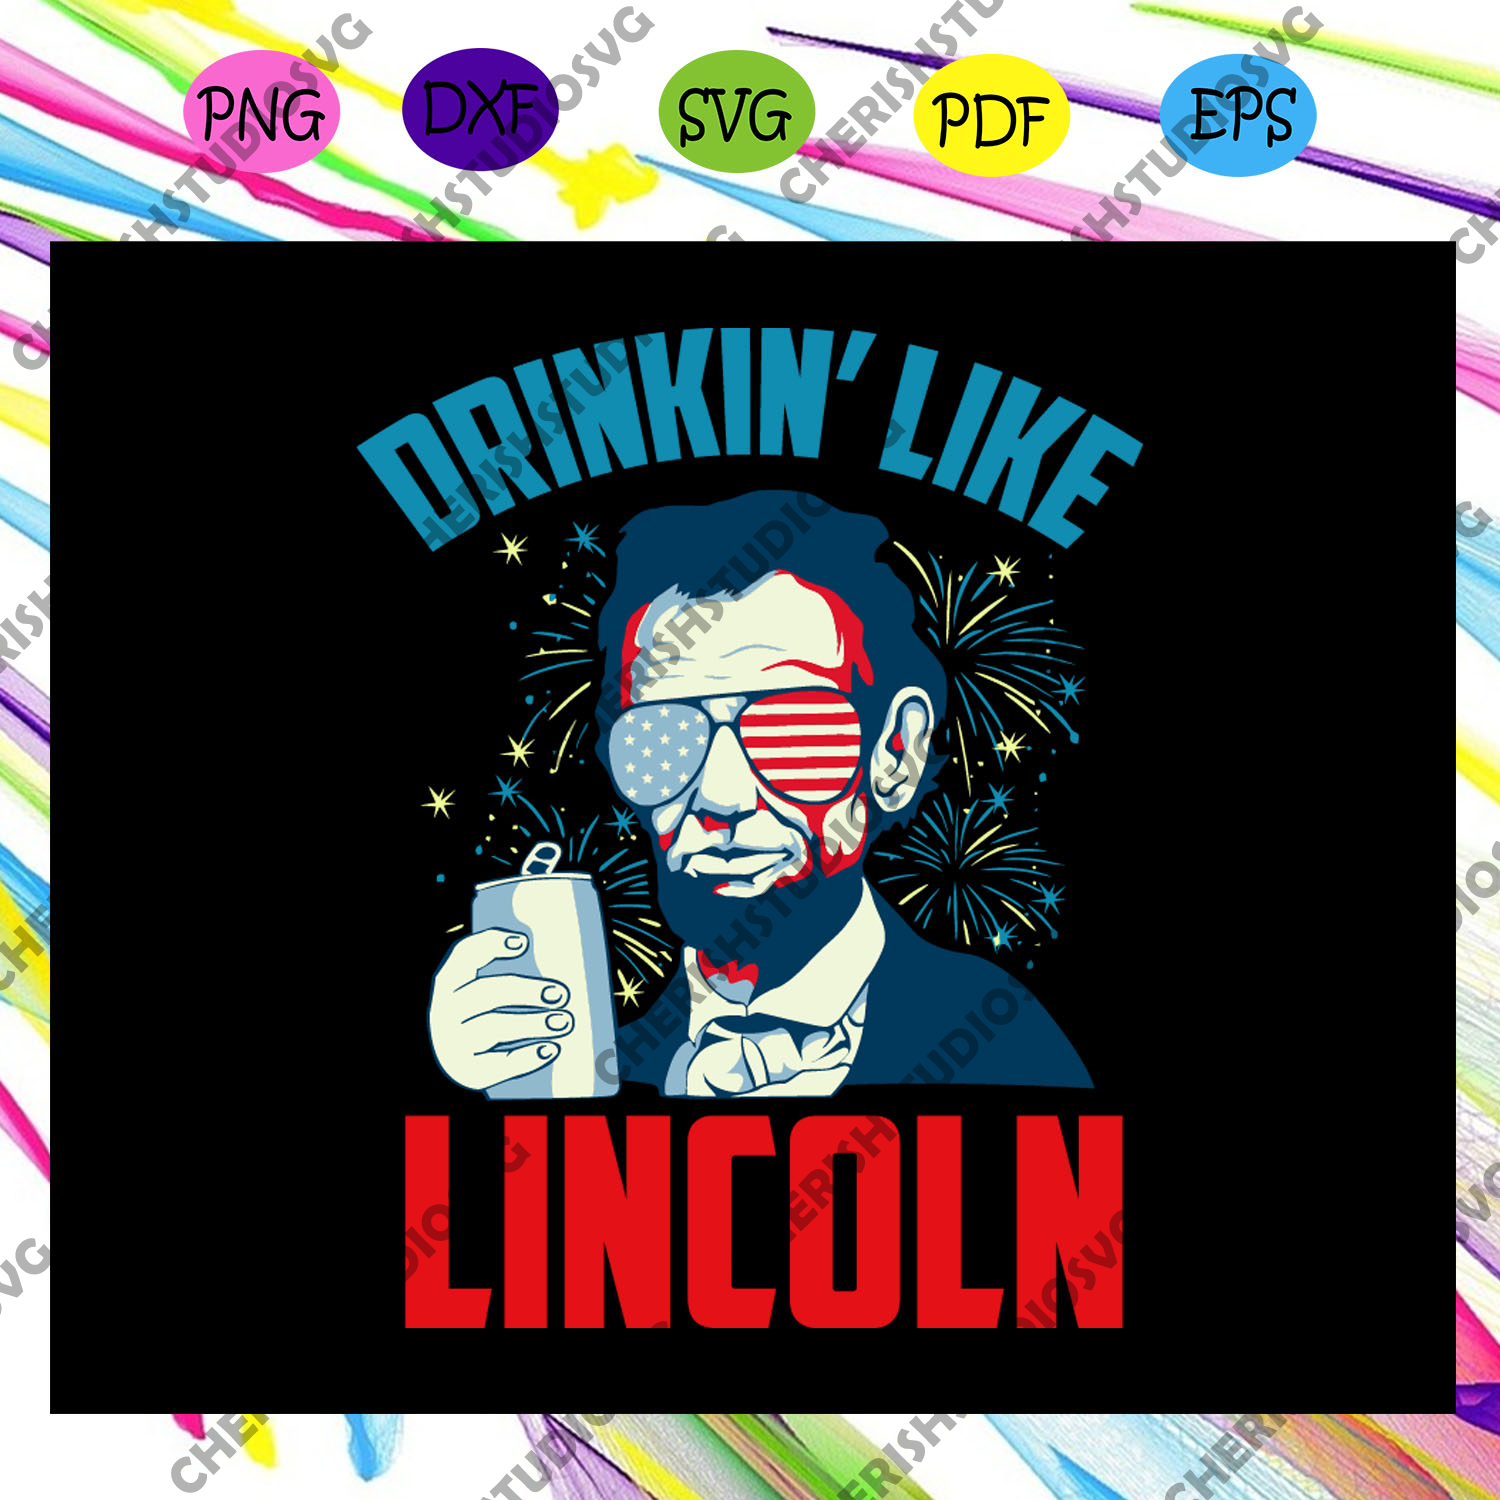 Drinkin' like lincoln, Lincoln svg, lincoln lover,independence day svg, happy 4th of july, patriotic svg, independence day gift,For Silhouette, Files For Cricut, SVG, DXF, EPS, PNG Instant Download